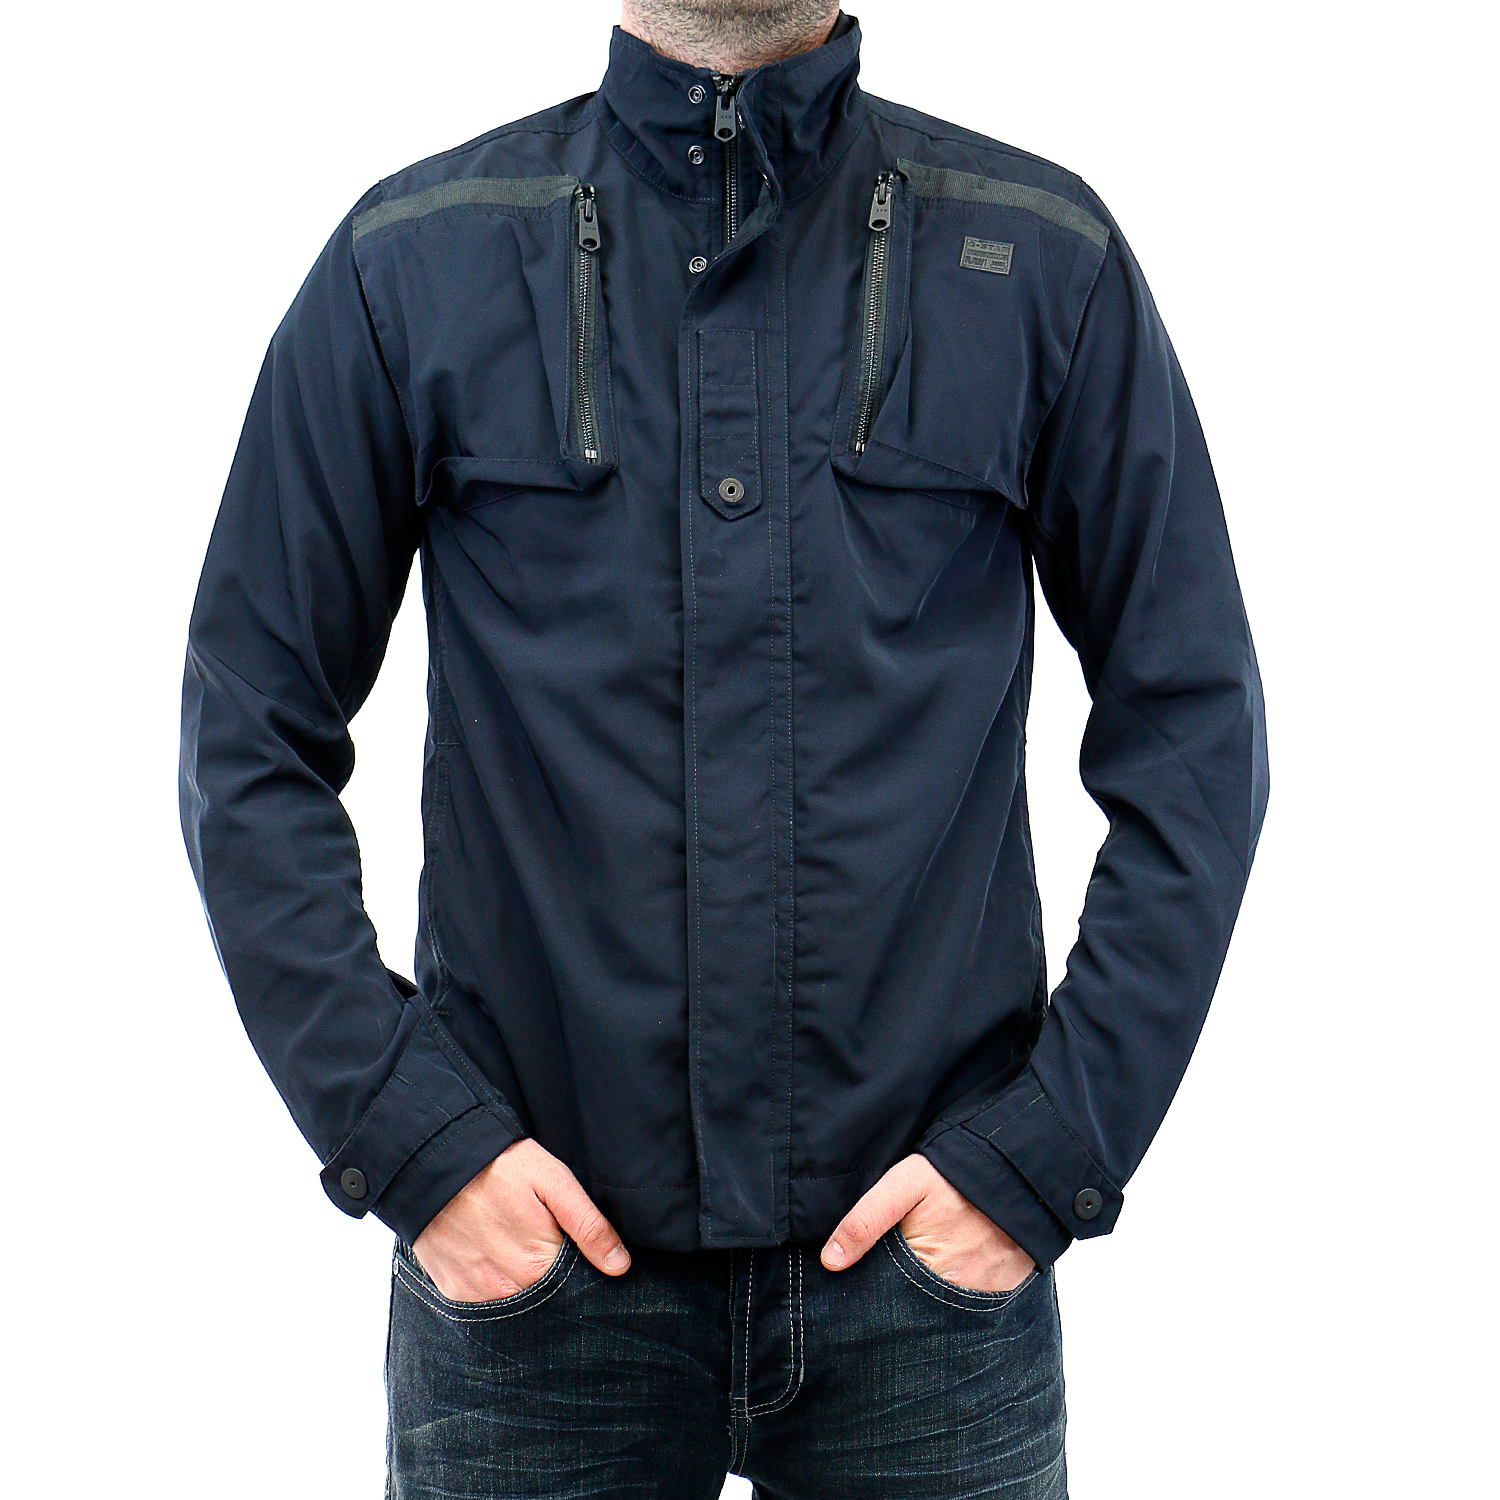 G-Star Setscale Hooded Overshirt Jacket - Mens $ 95 Prime. G-Star Raw. Men's Suzaki Us Mix JKT. from $ 05 Prime. G-Star Raw. Men's Attacc Down Clr Blck JKT. from $ 56 Prime. 5 out of 5 stars 3. G-Star Raw. G-Star Men's CO Recolite Overshirt Jacket Jackets % Cotton Brand New $ .